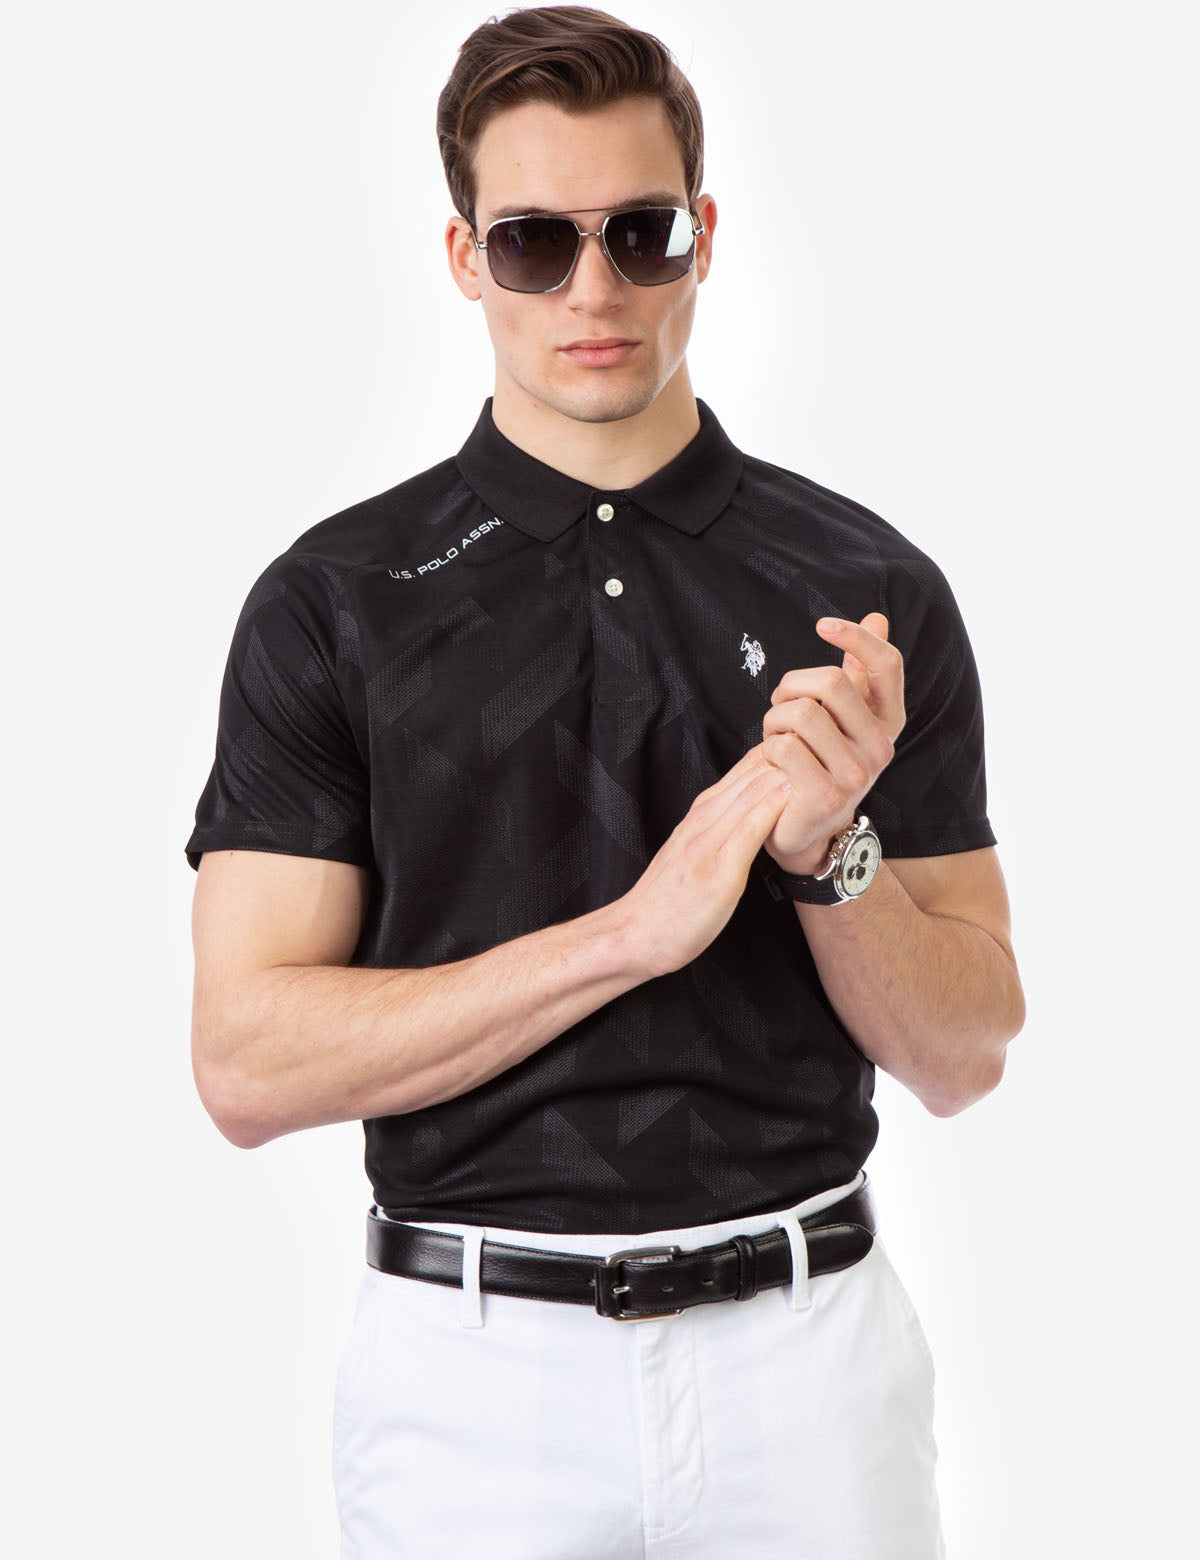 INTERLOCK JAQUARD GOLF SHIRT - U.S. Polo Assn.